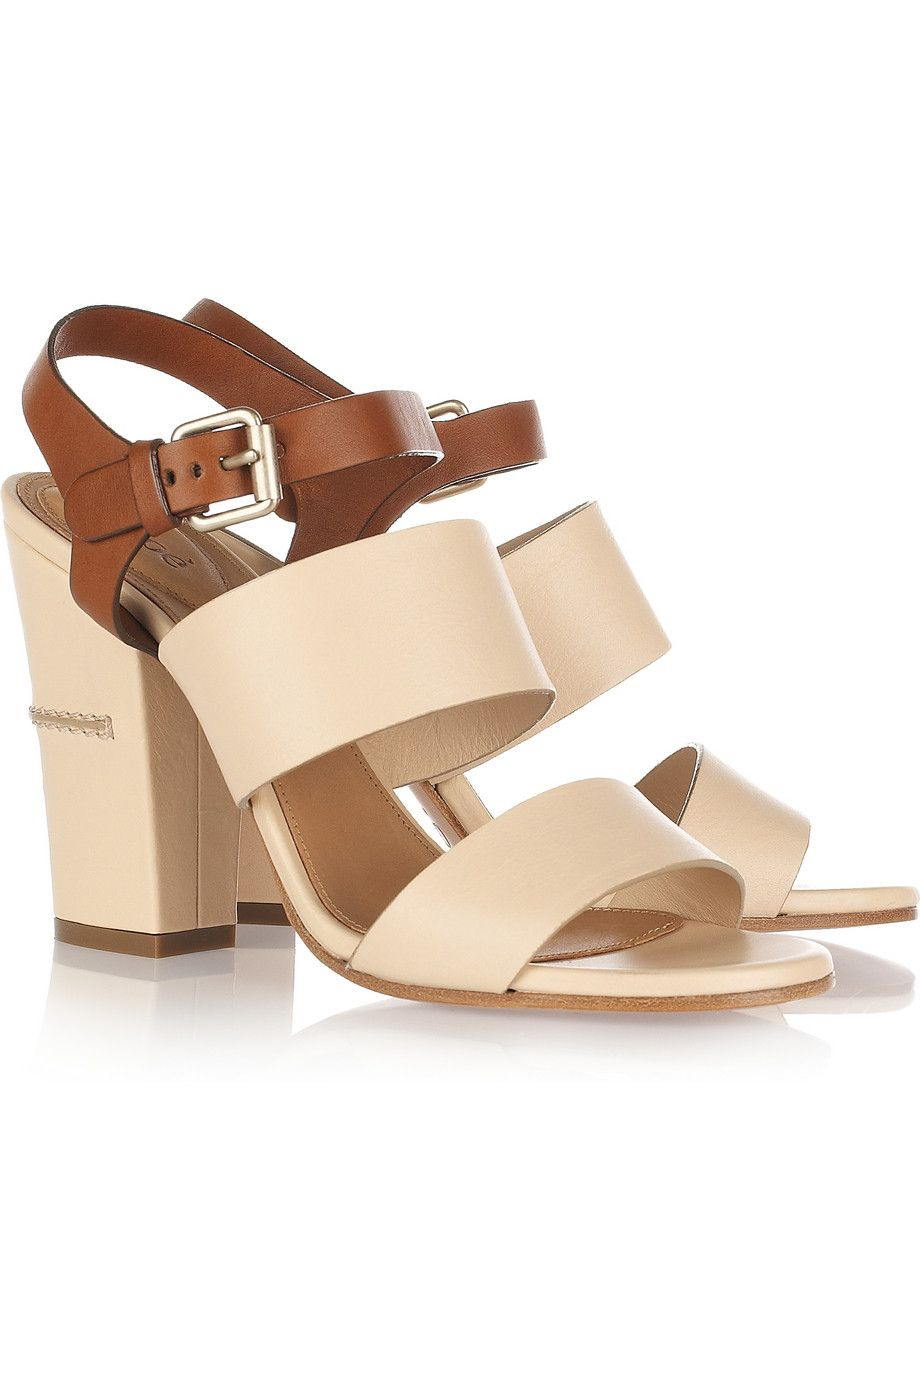 CHLOÉ Two-tone leather sandals. Maybe go a bit more natural w  the wedding  shoes since I ll be traipsing through a field  71fb4d97de8